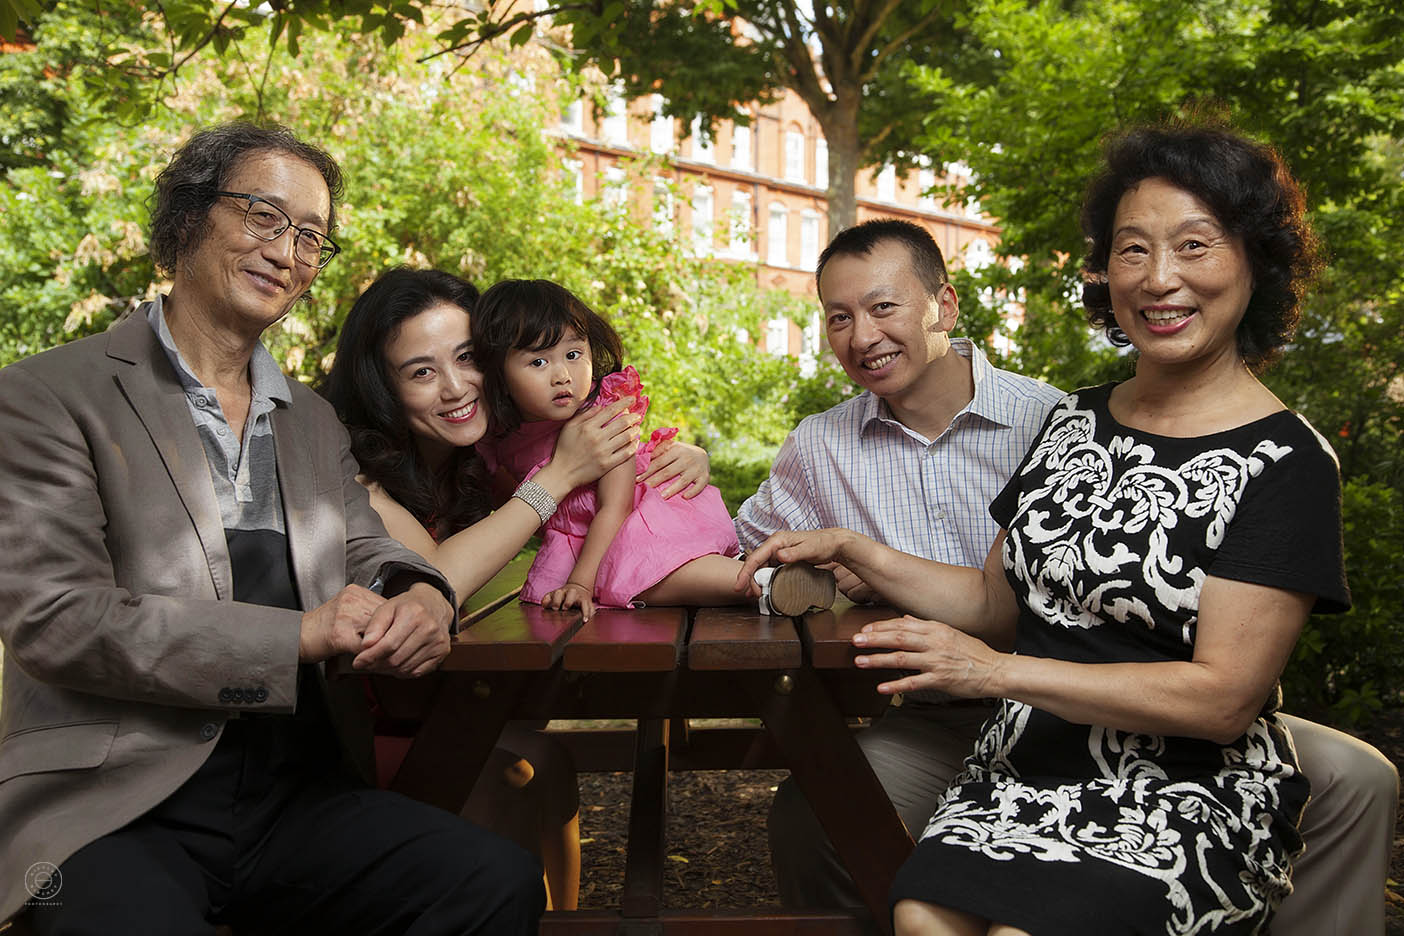 Portrait session with Chinese family in park in London.